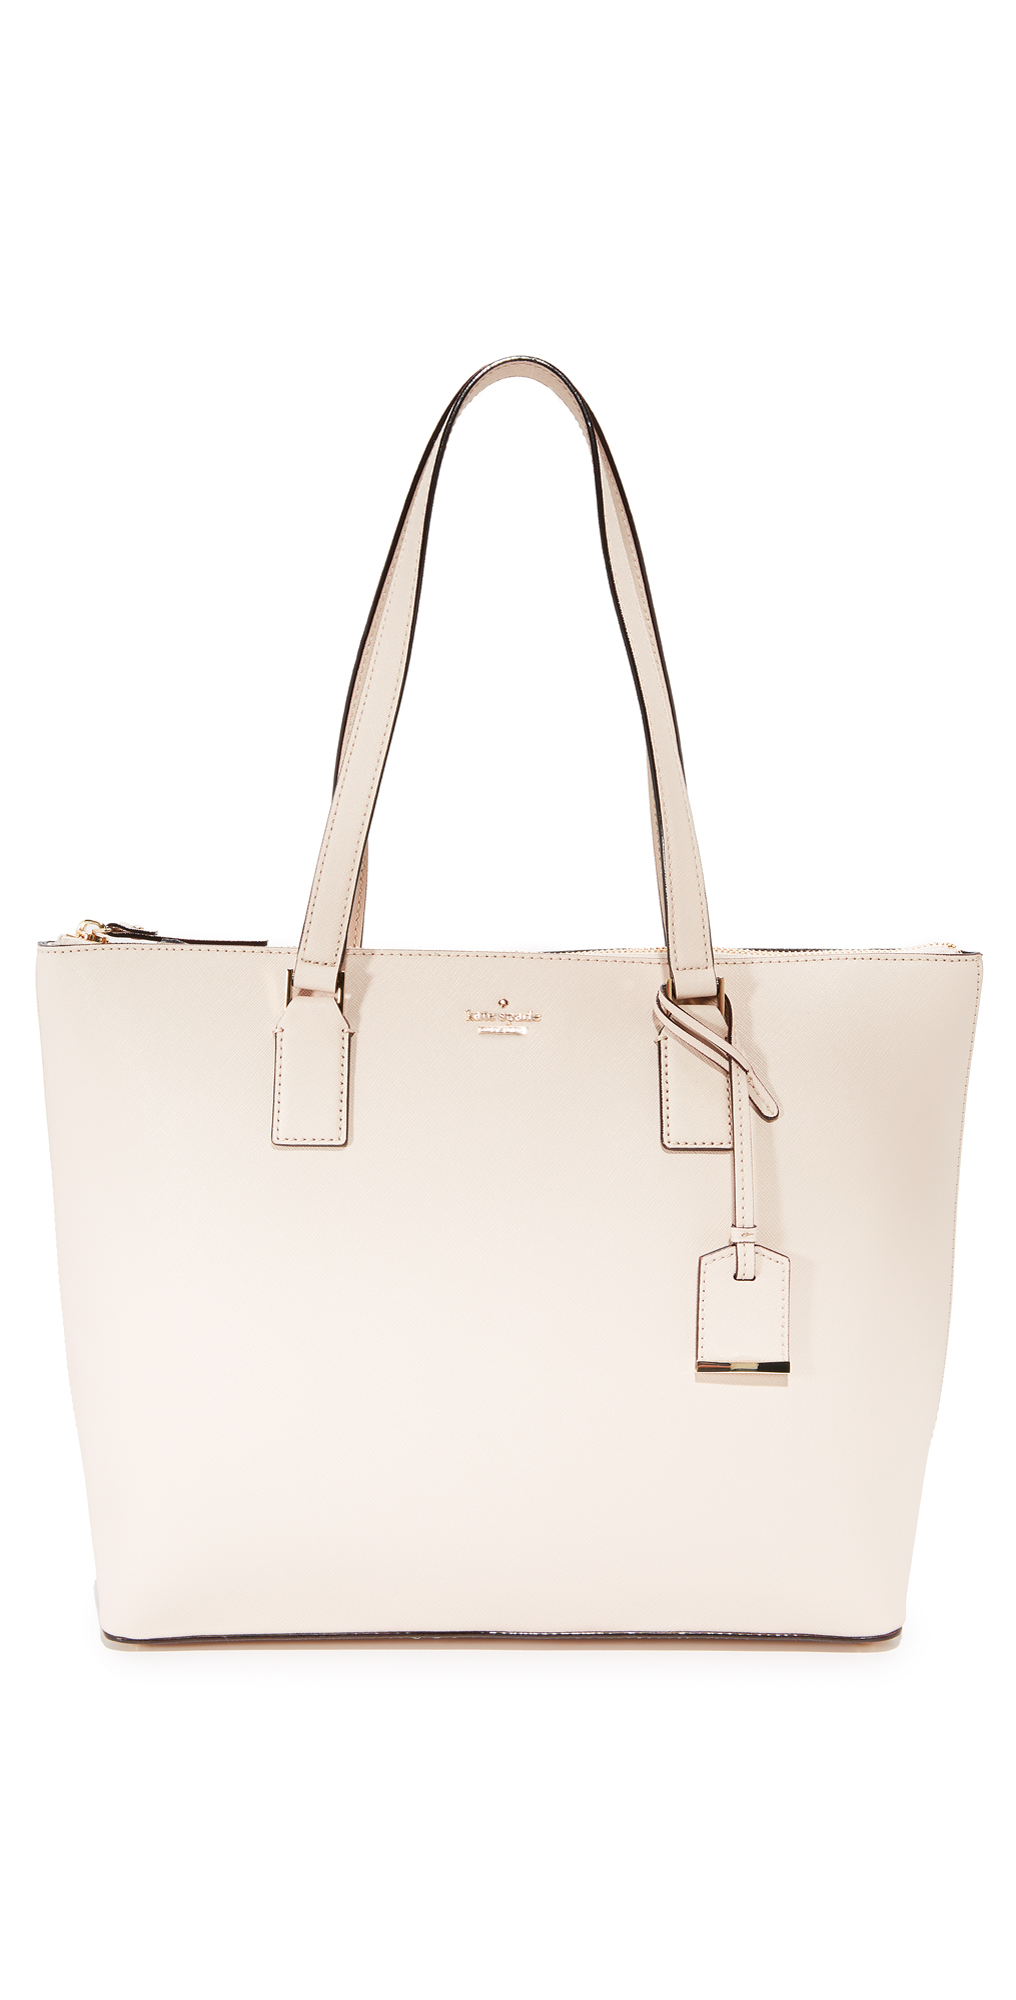 Lucie Tote Kate Spade New York